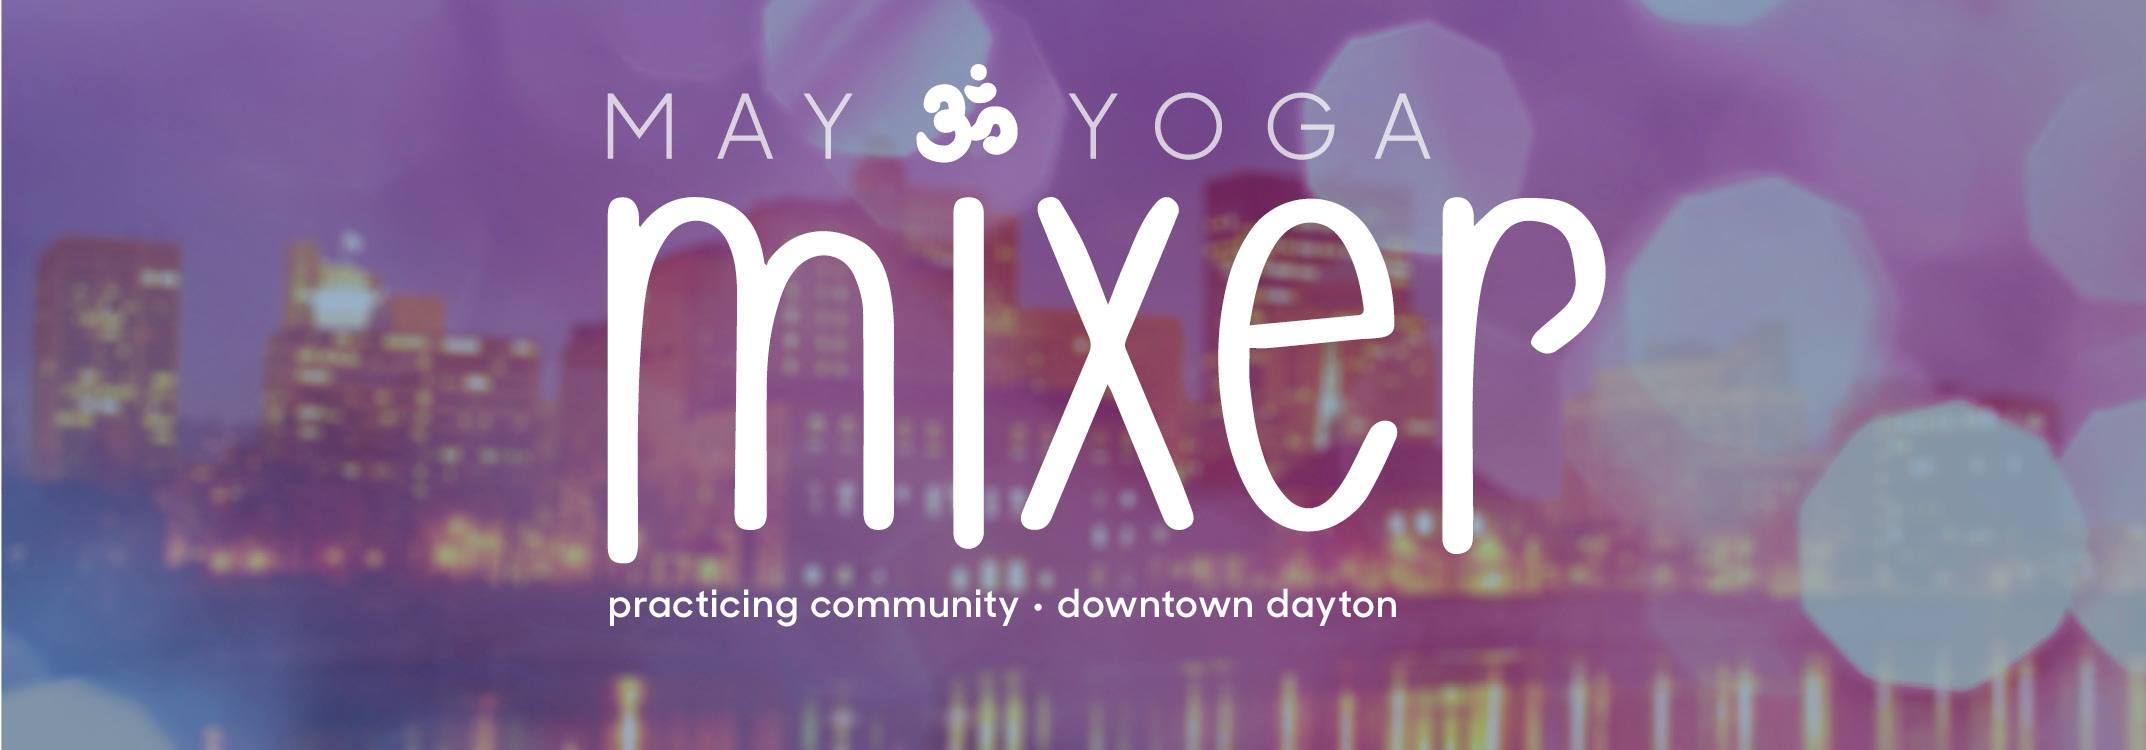 May Yoga Mixer   Gather all the Yogis and the Wanna-be's...... it's time to Mix up your Yoga routine with the May Yoga Mixer.  When: Saturday, May 20, 2017  Where: Firefly Building, 123 Webster Street, Dayton   Time: Doors open at 5:30pm, yoga starts at 6:30, rooftop shuts down at 9:30pm  Cost: $20 (purchase tickets through EventBrite)  Level of Experience: From 'Nope, never done it' to 'I took a weekend workshop on that!' and everything in between. This is a feel-good yoga flow that you can decide your level of participation.  What else? DJ Strangemind will once again provide the tunes for us!  We are waiting on responses from the local food trucks to see if they'll participate this year -- we'll keep you posted.